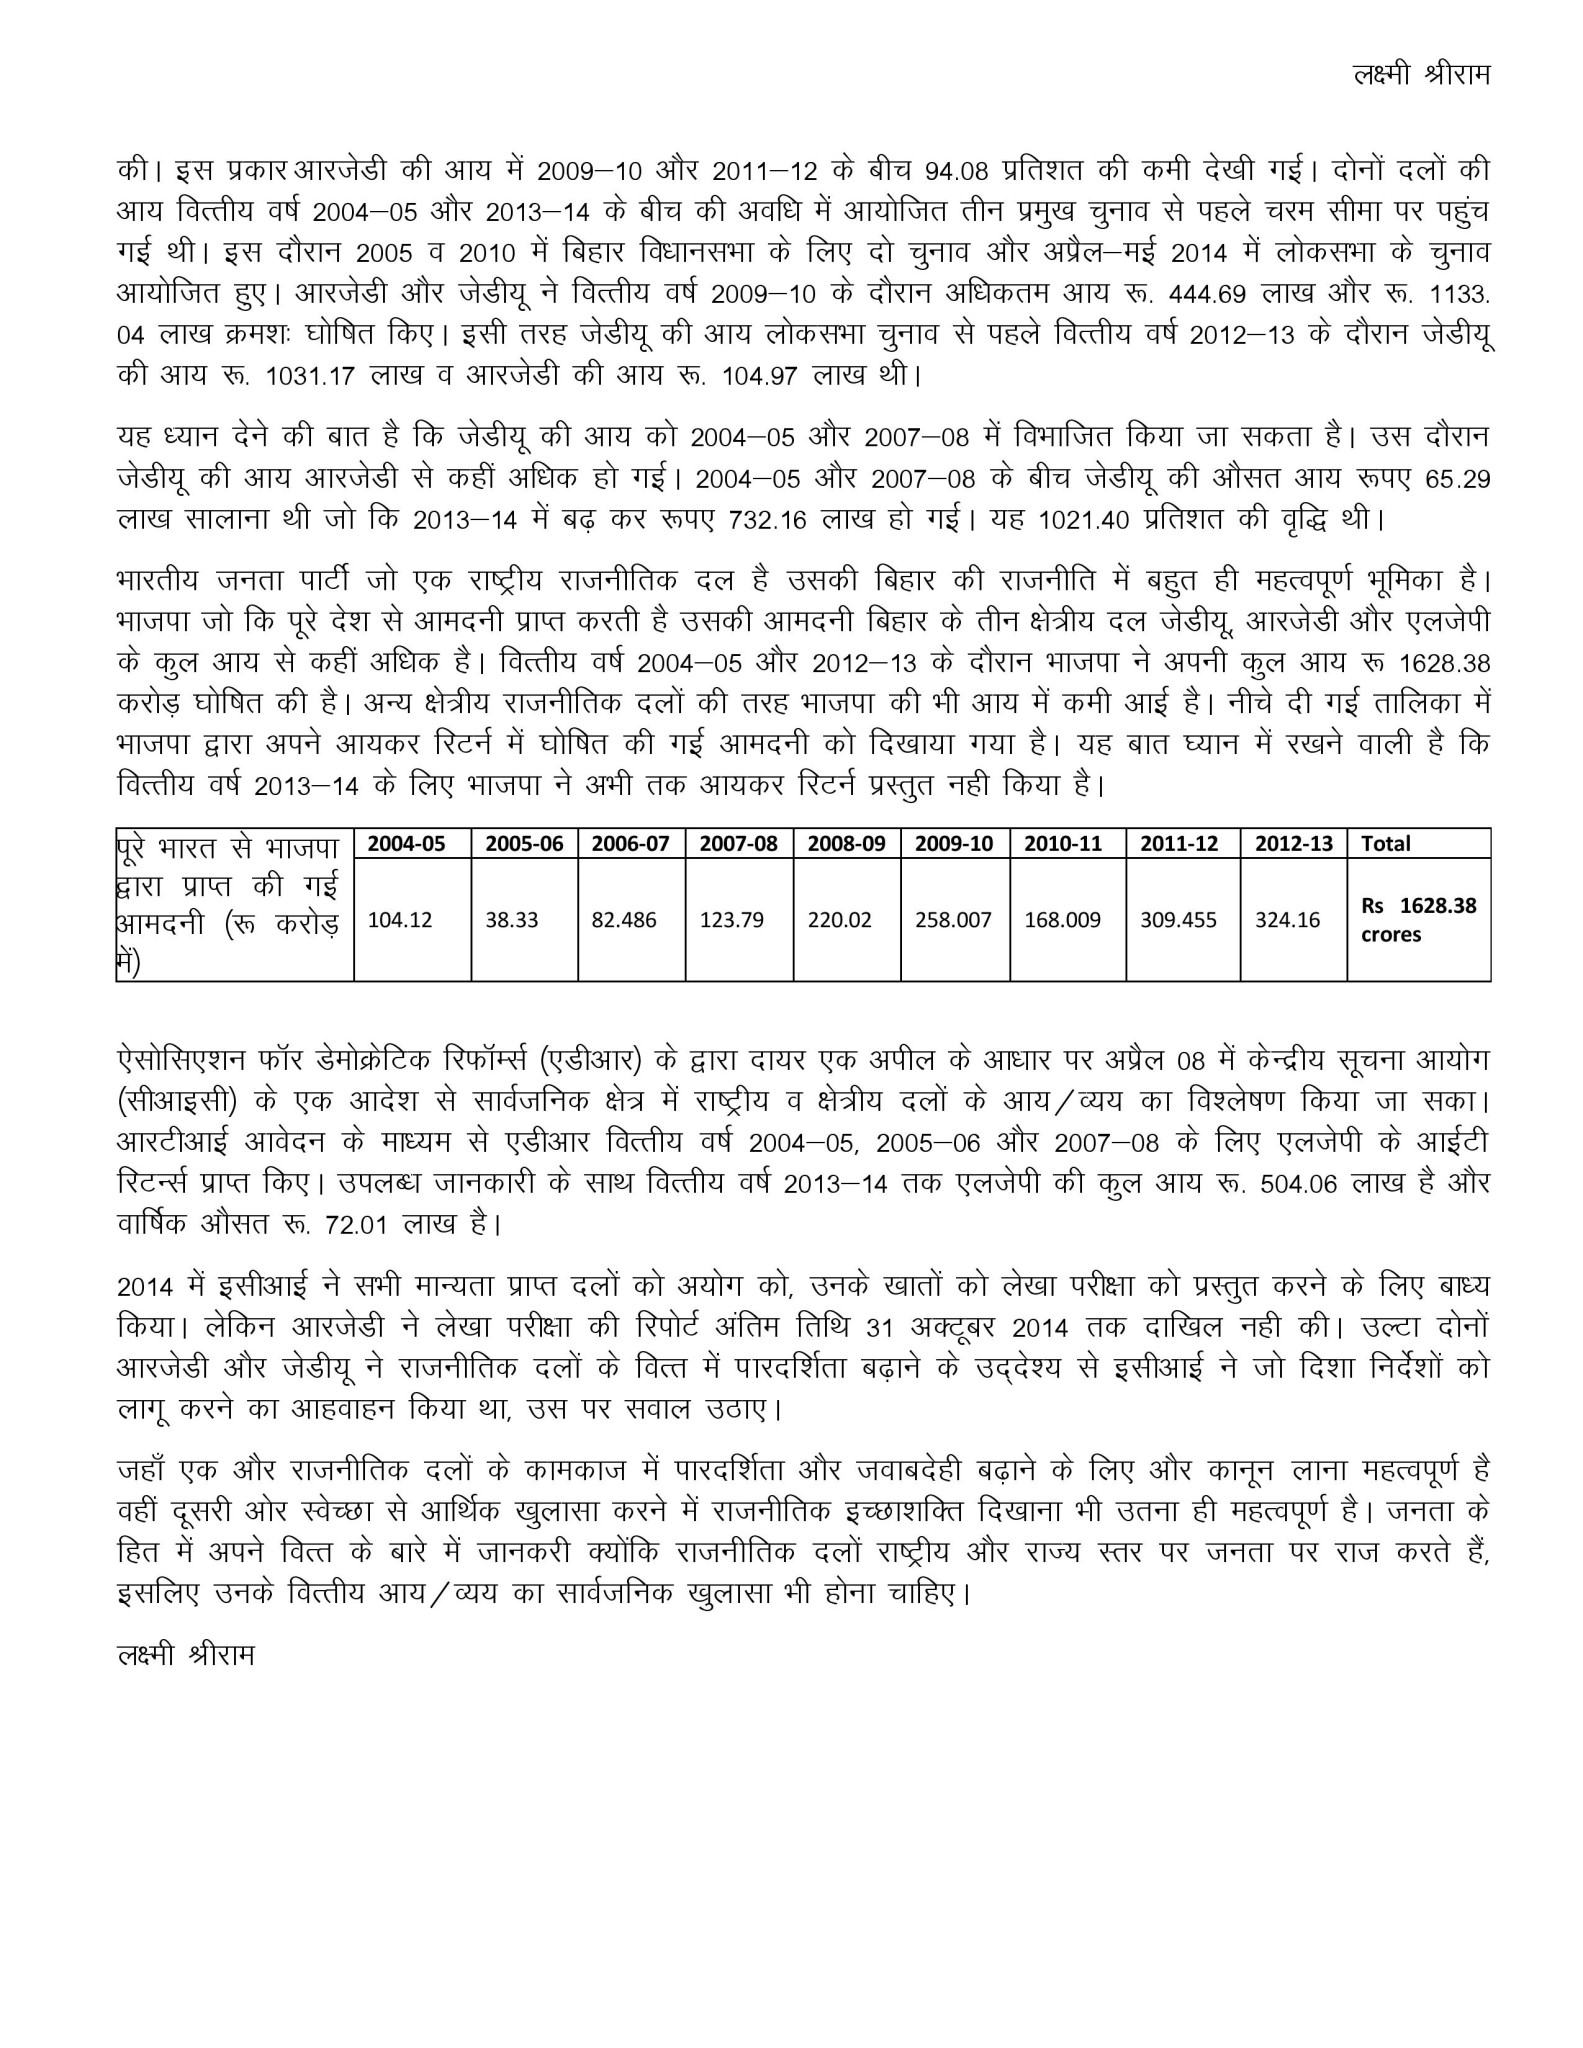 Income of Bihar s political parties in the past 10 years - Hindi-page-002